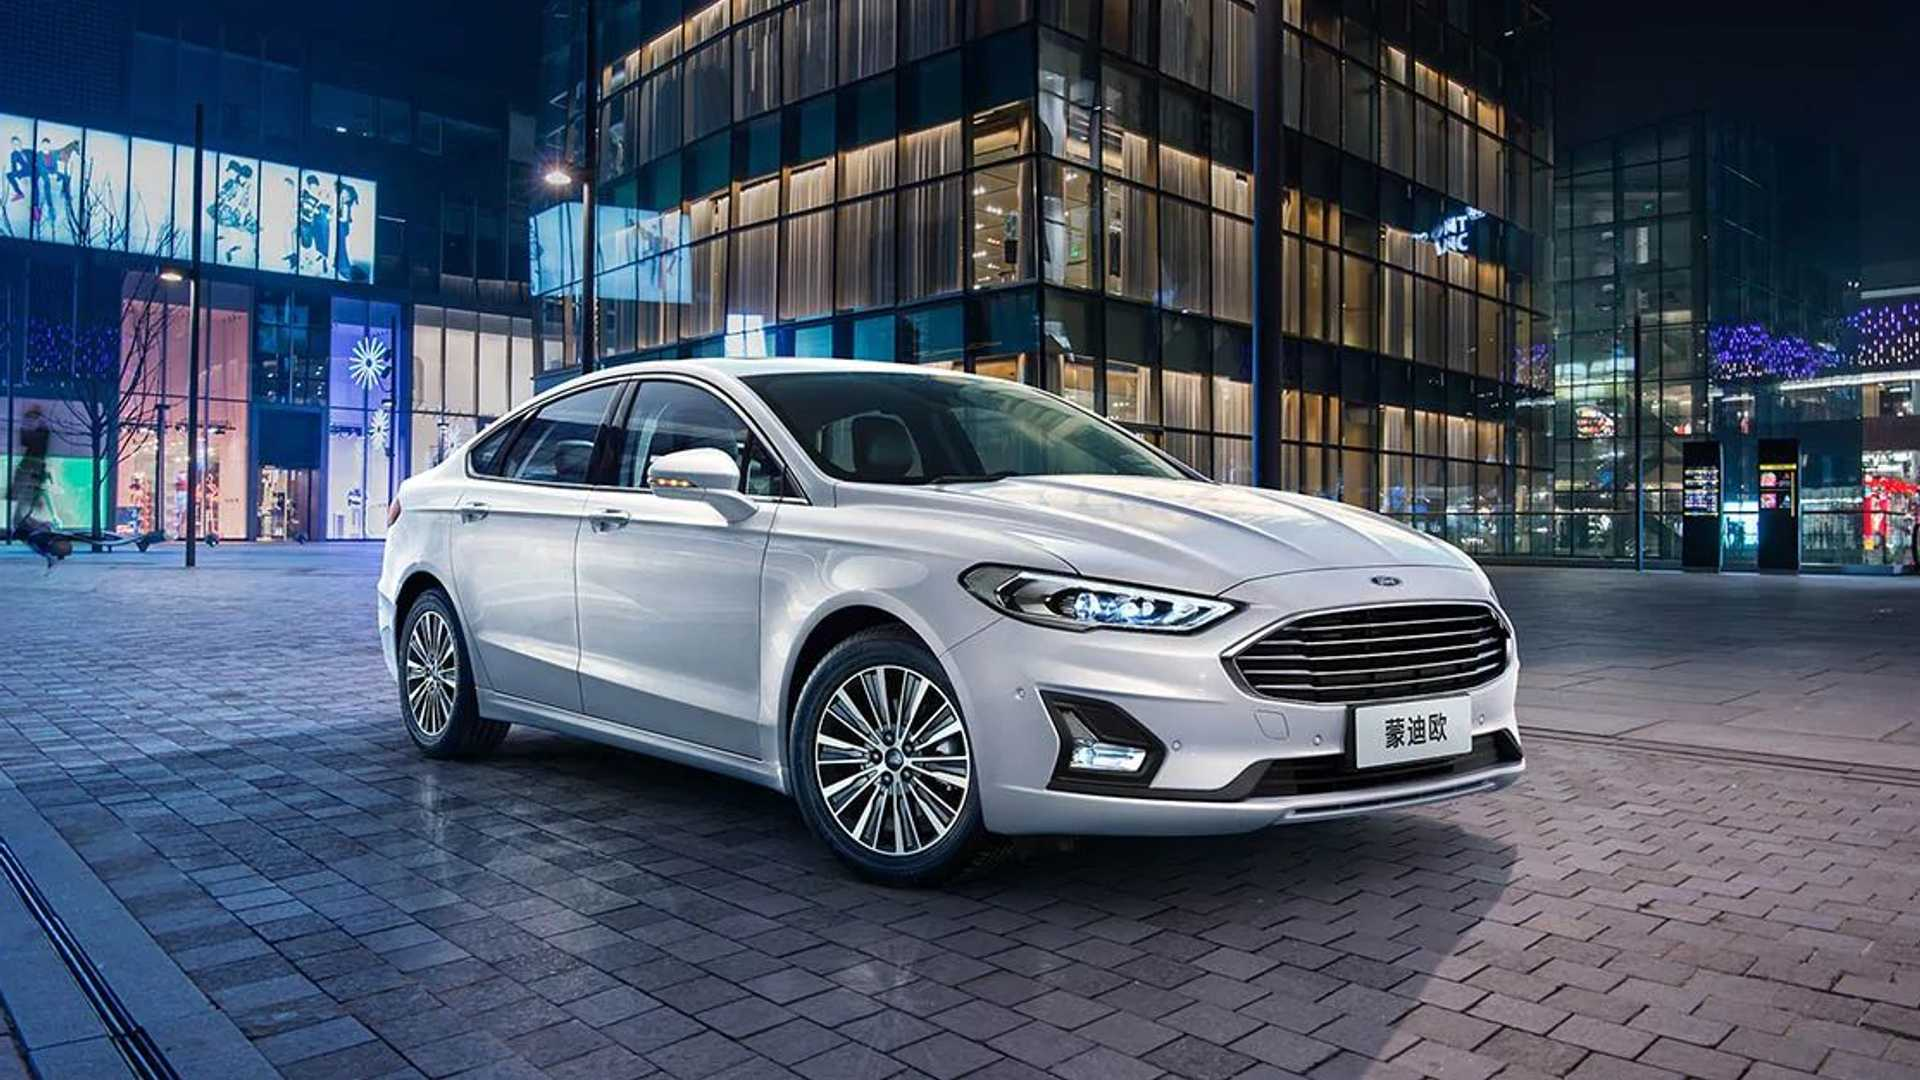 2020-ford-mondeo-facelift-china-spec-1